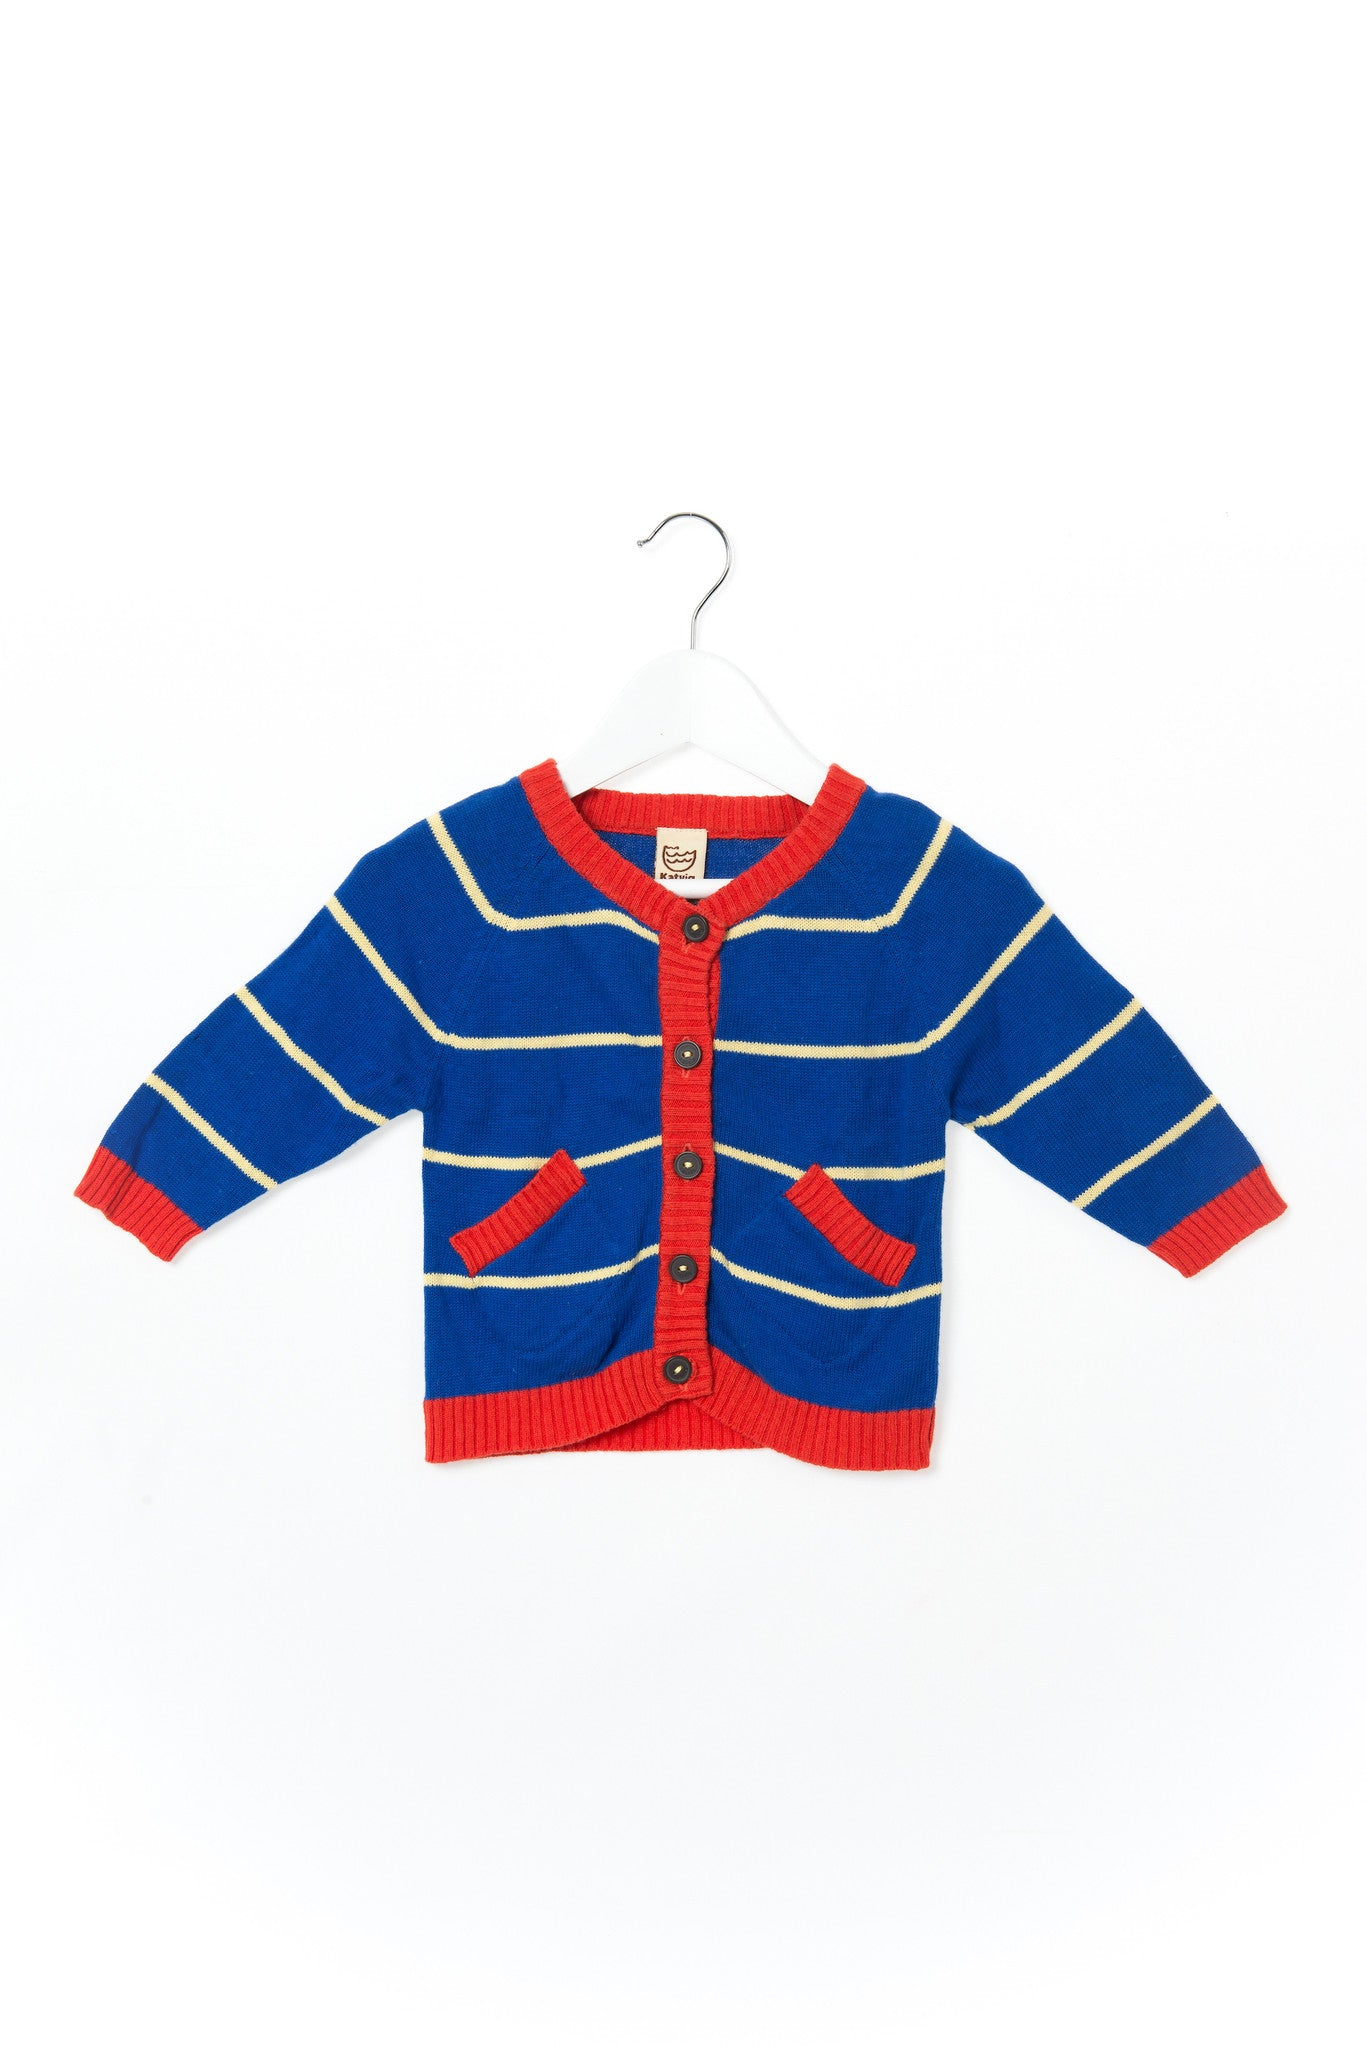 Cardigan 2T, Katvig at Retykle - Online Baby & Kids Clothing Up to 90% Off